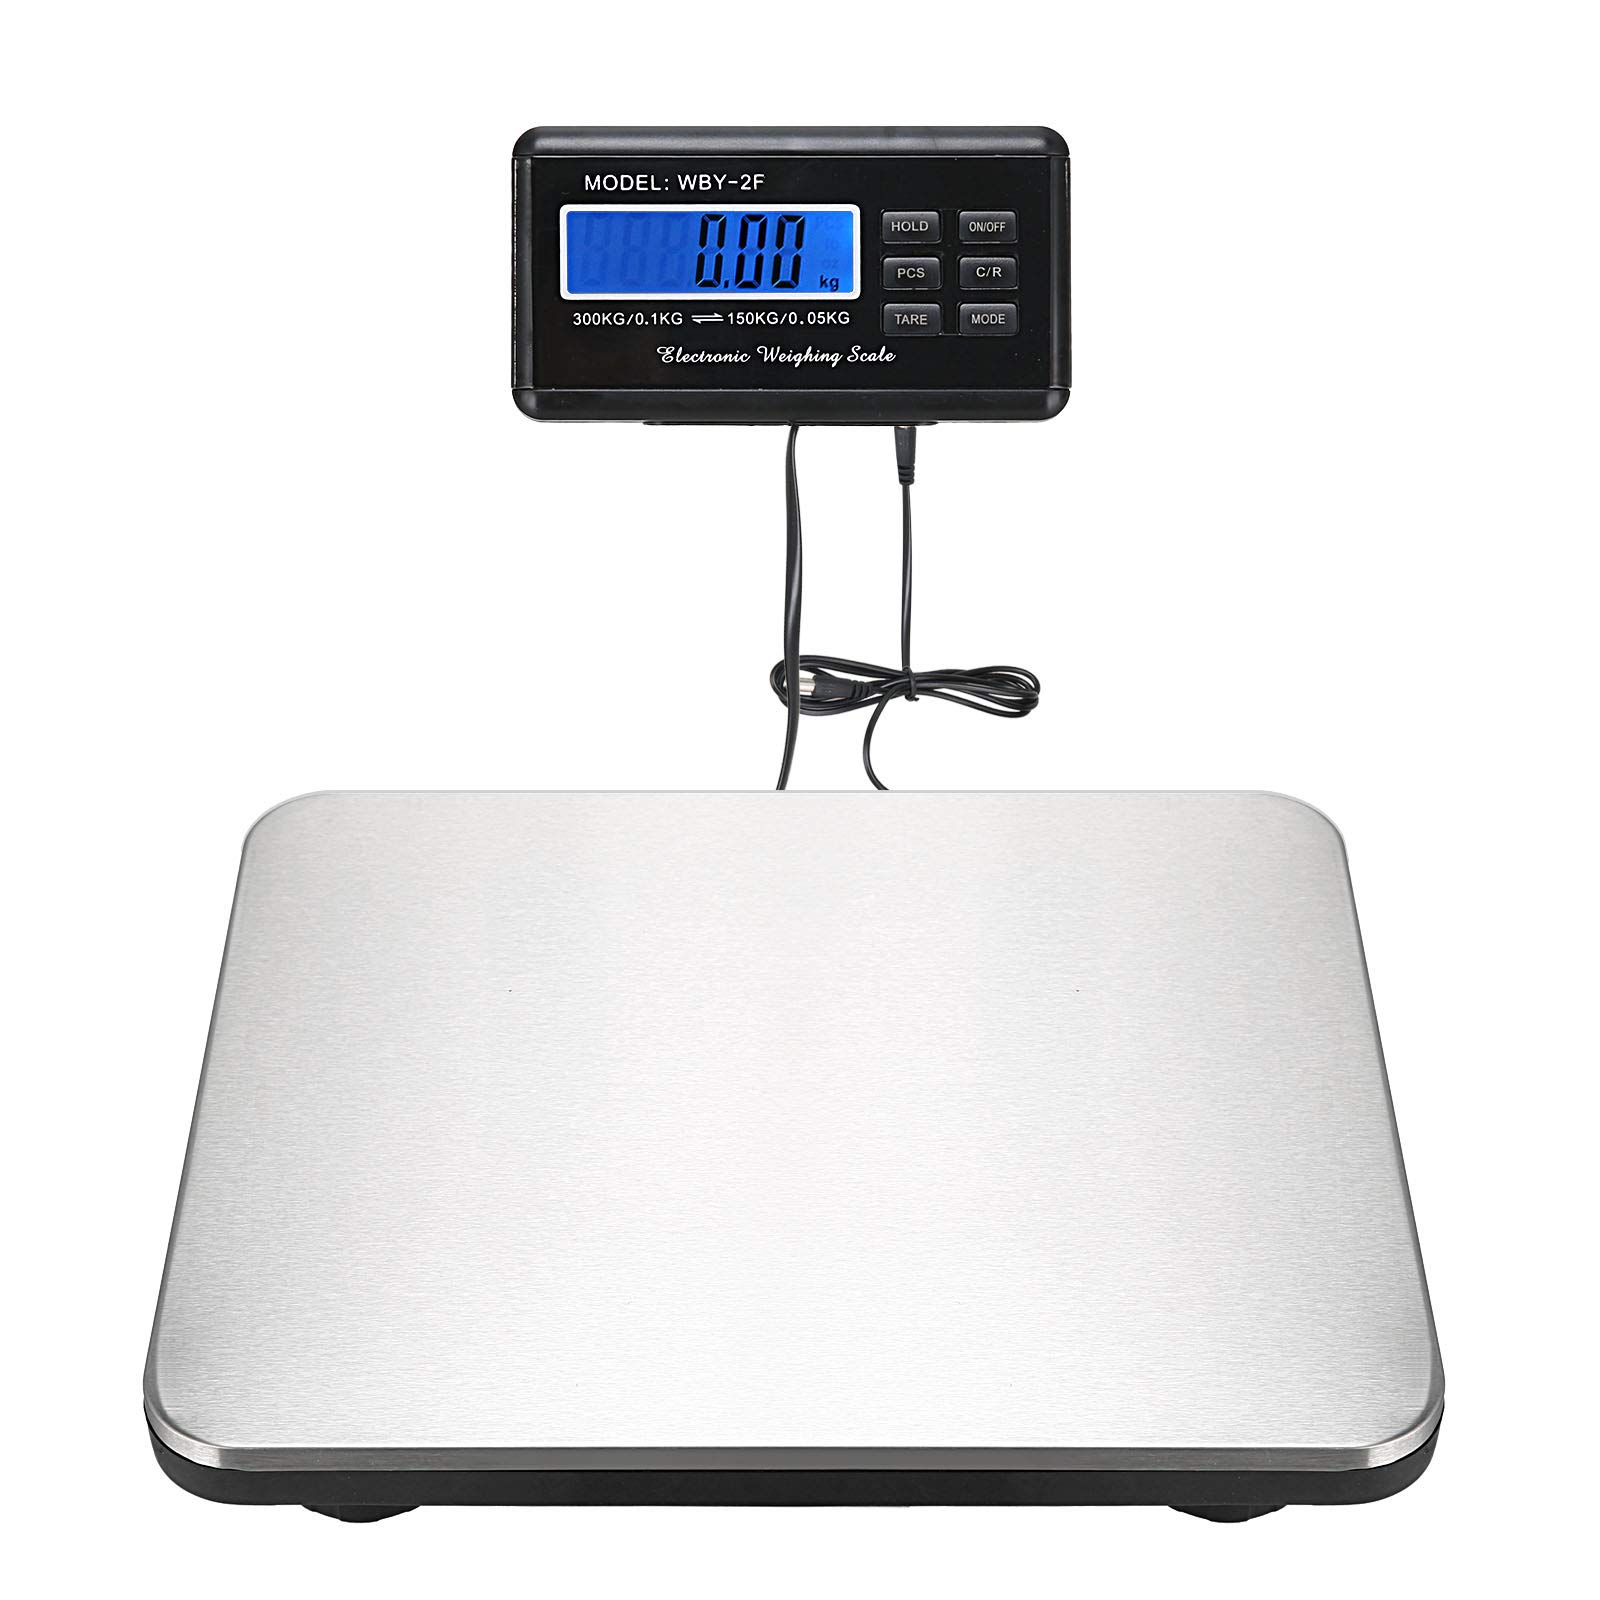 Voilamart Digital Platform Scale Shipping and Postal Scale, Heavy Duty 660 lbs Capacity, w/Waterproof Stainless Steel Large Platform, USPS Post Office Postal Scale Digital Weight Scale, Luggage Scale